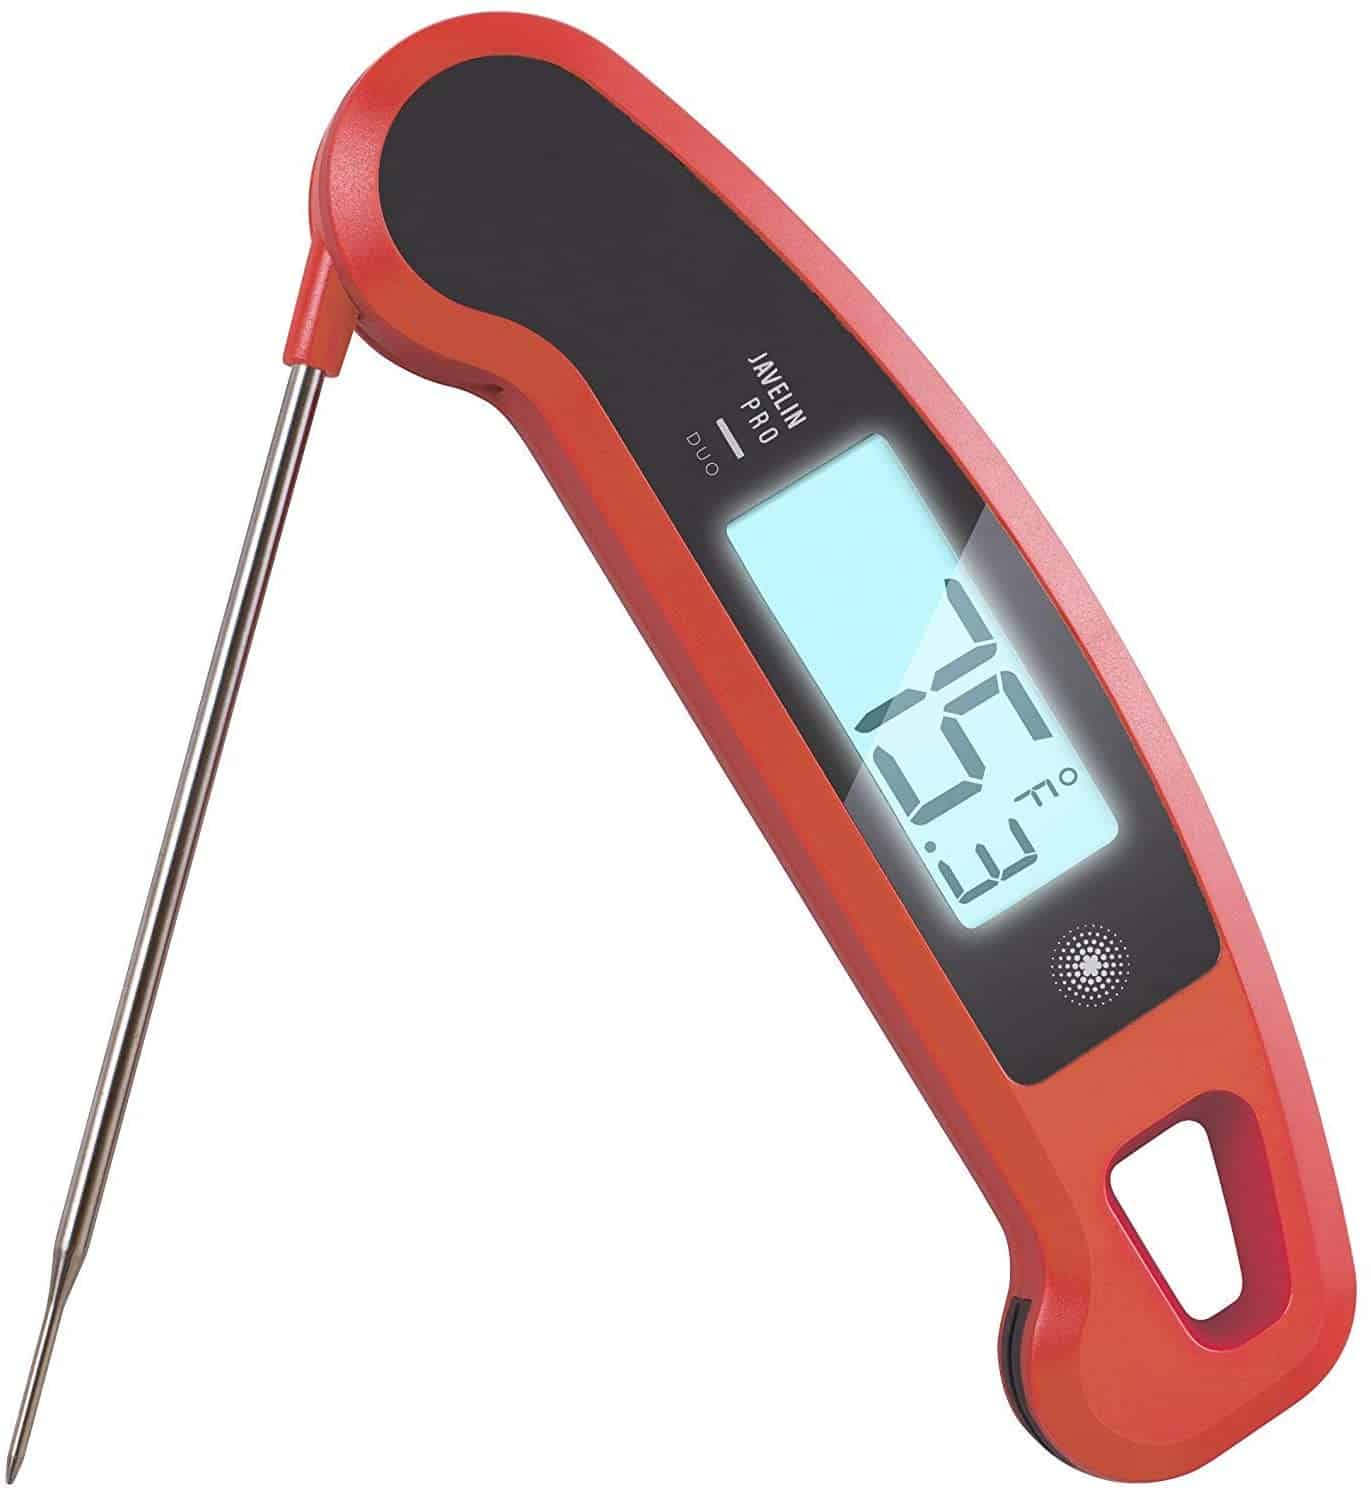 Best instant-read thermometer- Lavatools Javelin Pro